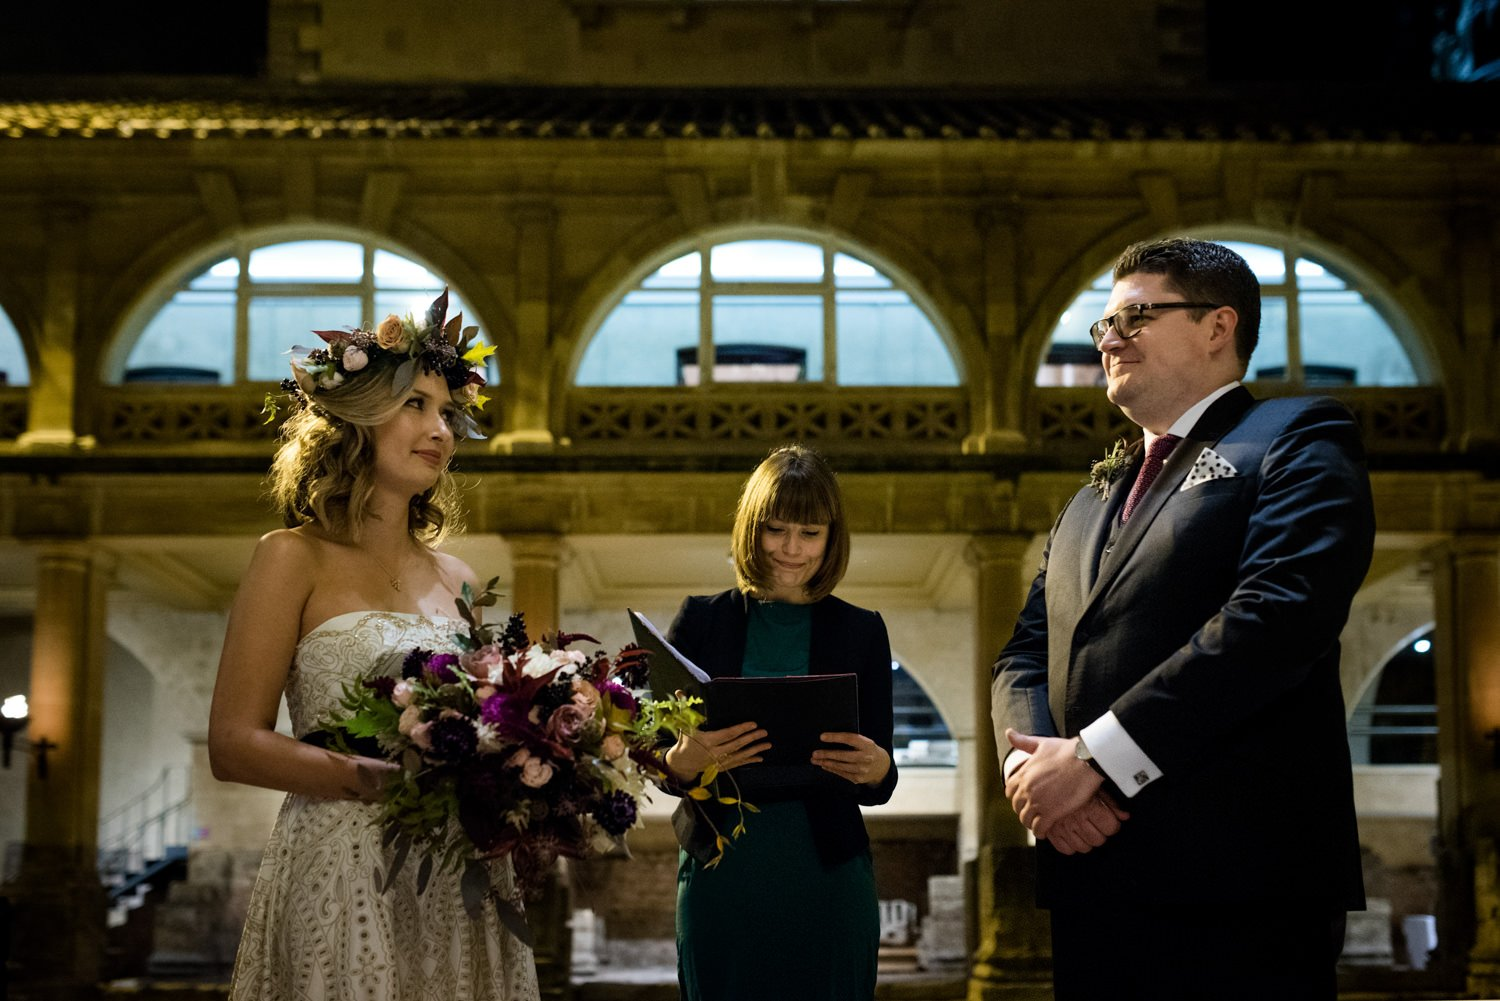 Authentic creative wedding ceremony at Roman Baths Somerset